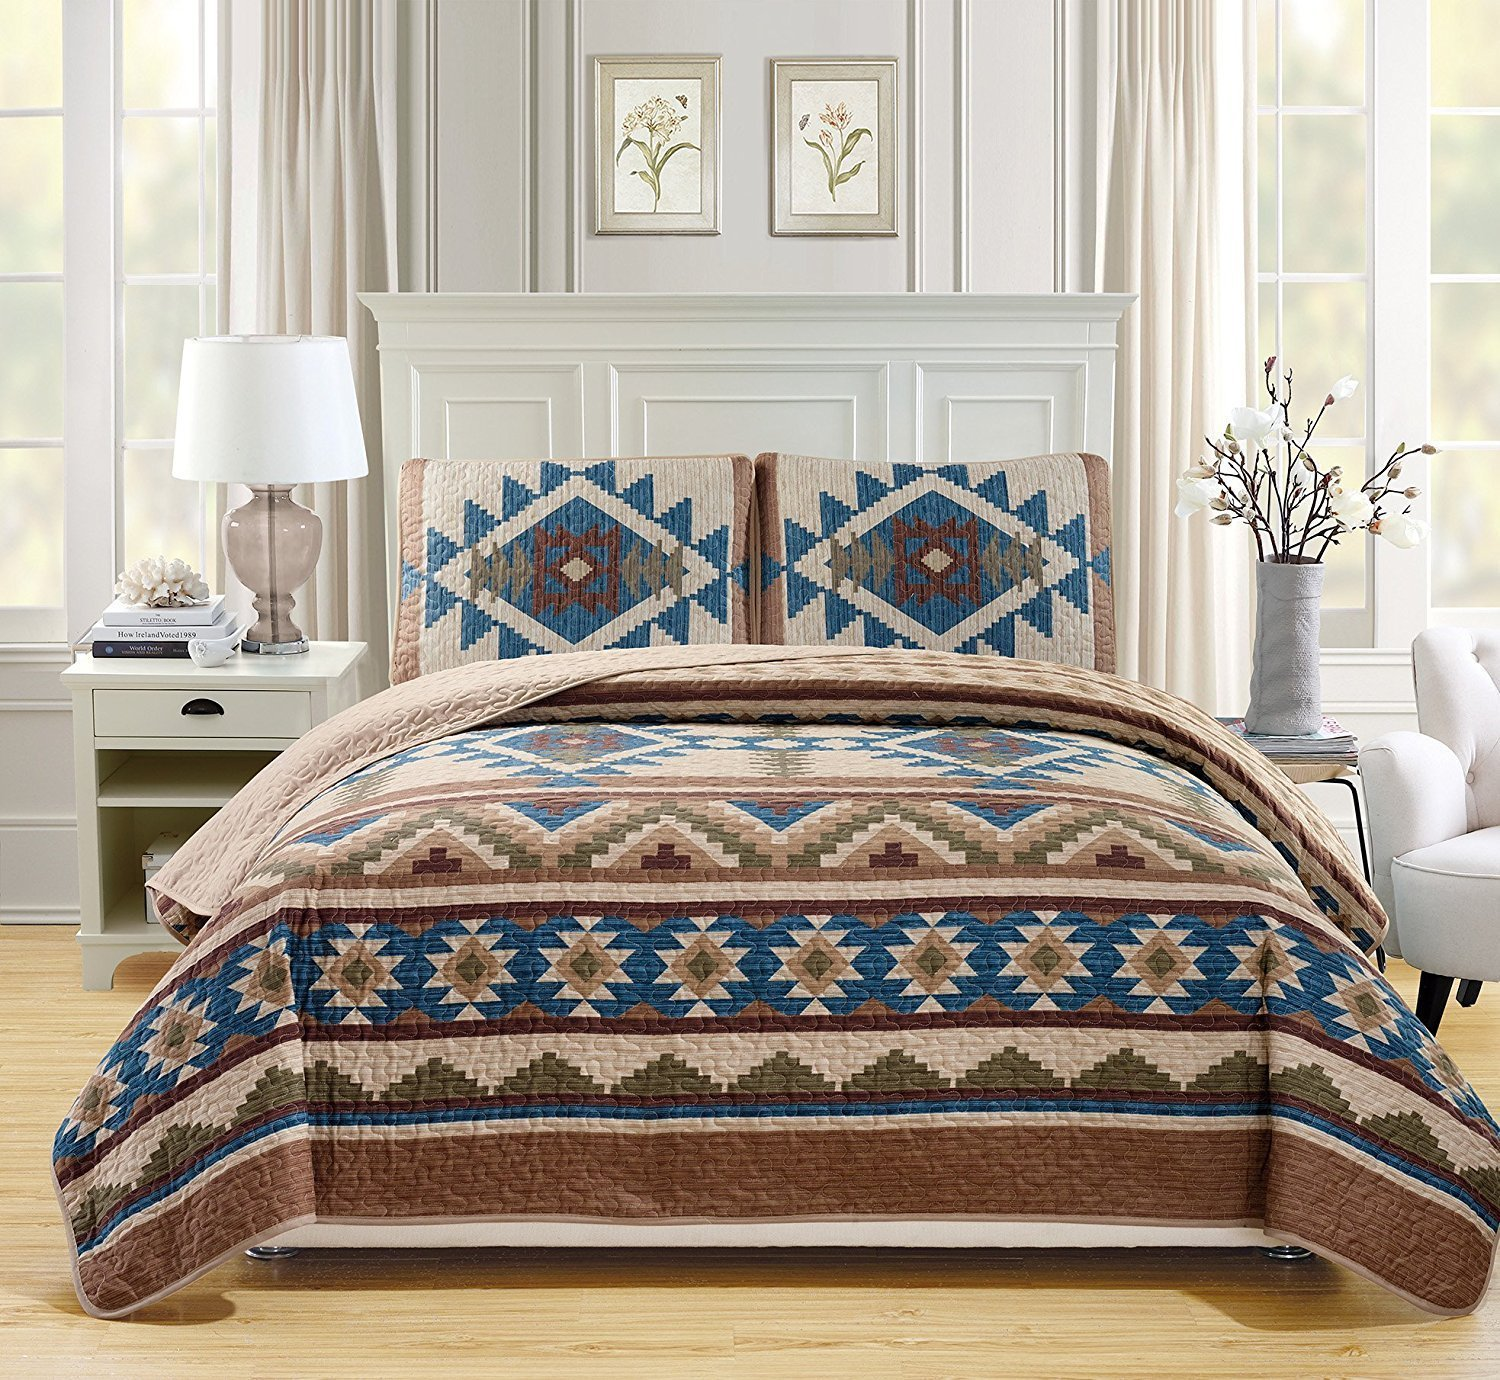 Western Southwestern Native American Tribal Navajo Design 3 Piece Multicolor Beige Taupe Brown Blue Green Oversize Bedspread Quilt Coverlet Set